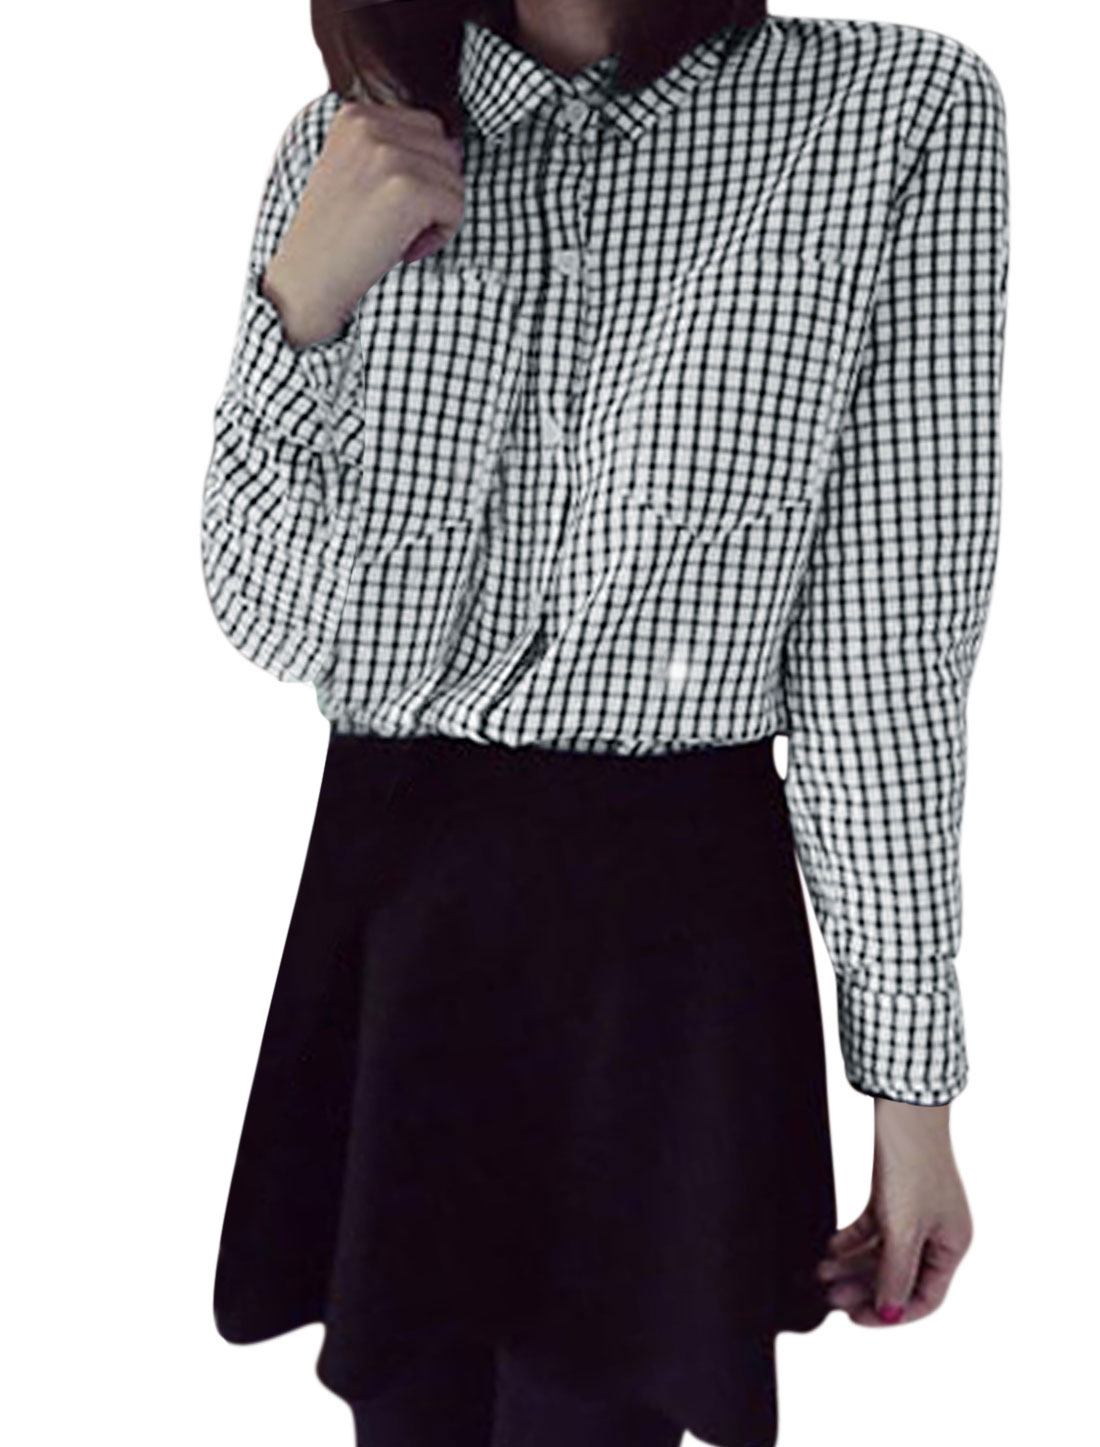 Ladies Black White Plaids Prints Button Closure Bust Pockets Fashion Blouse XS